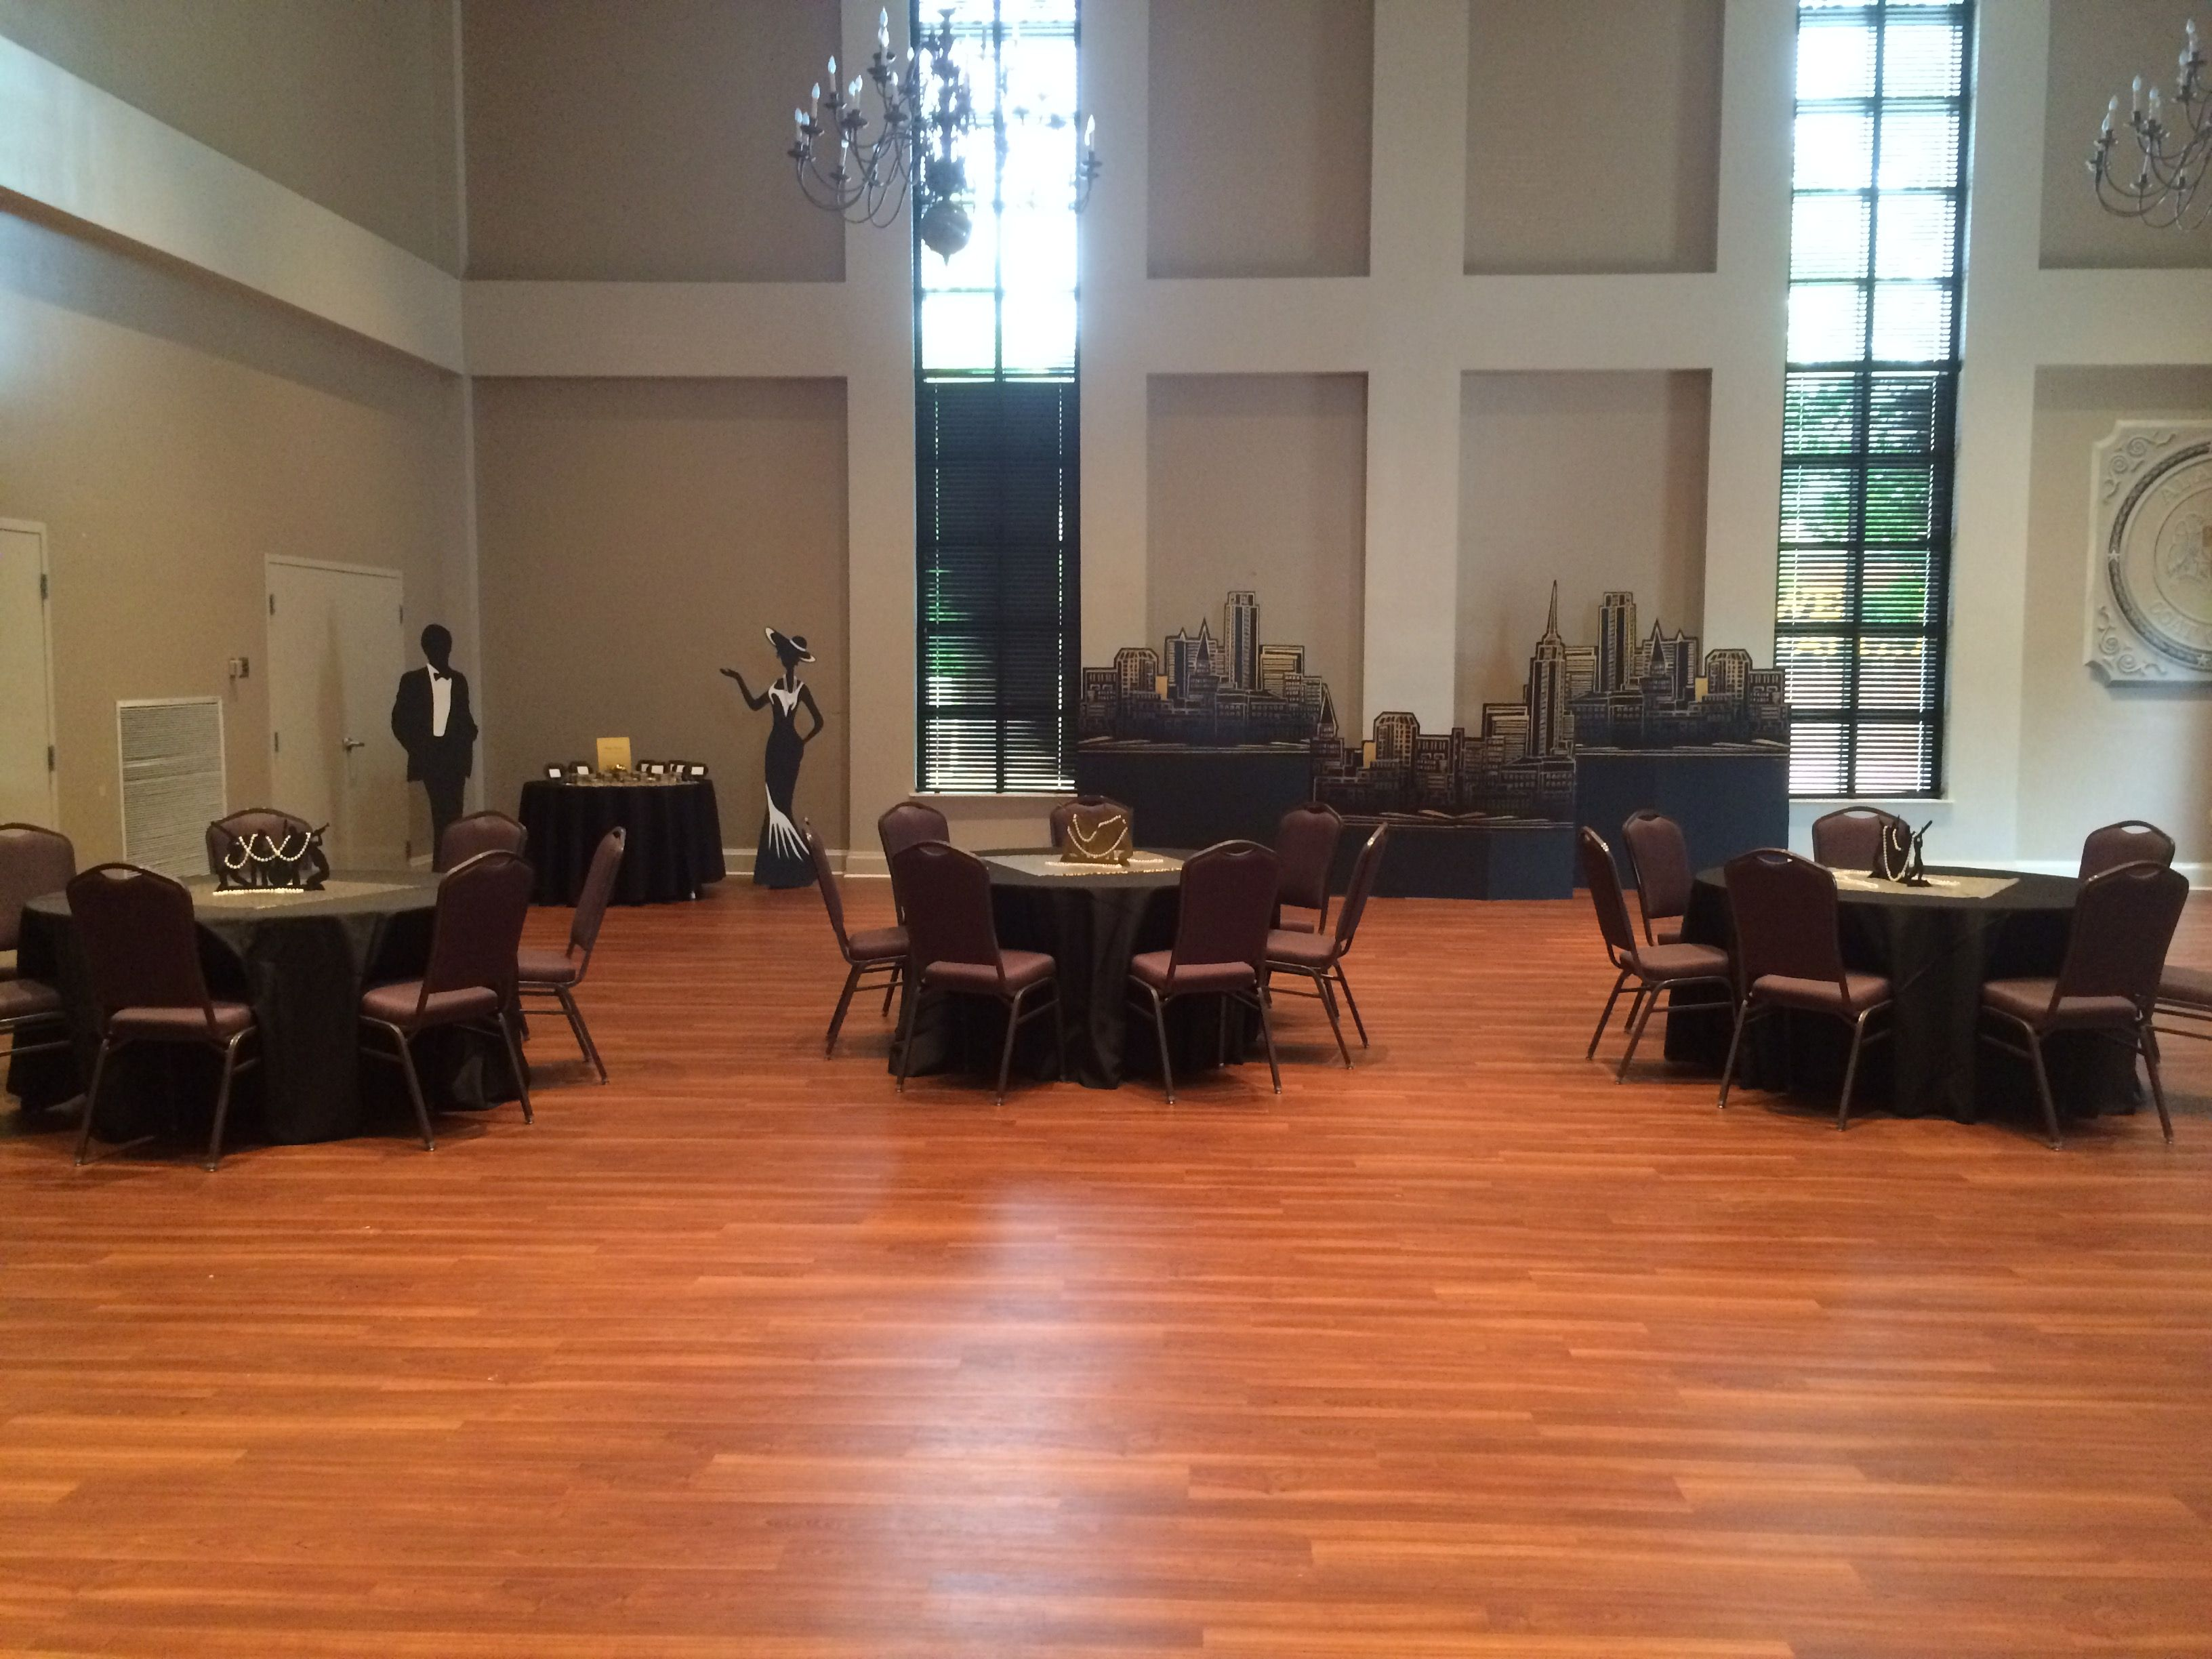 The Grand Hall At Earlyworks Museum Venue Wedding Grandhall